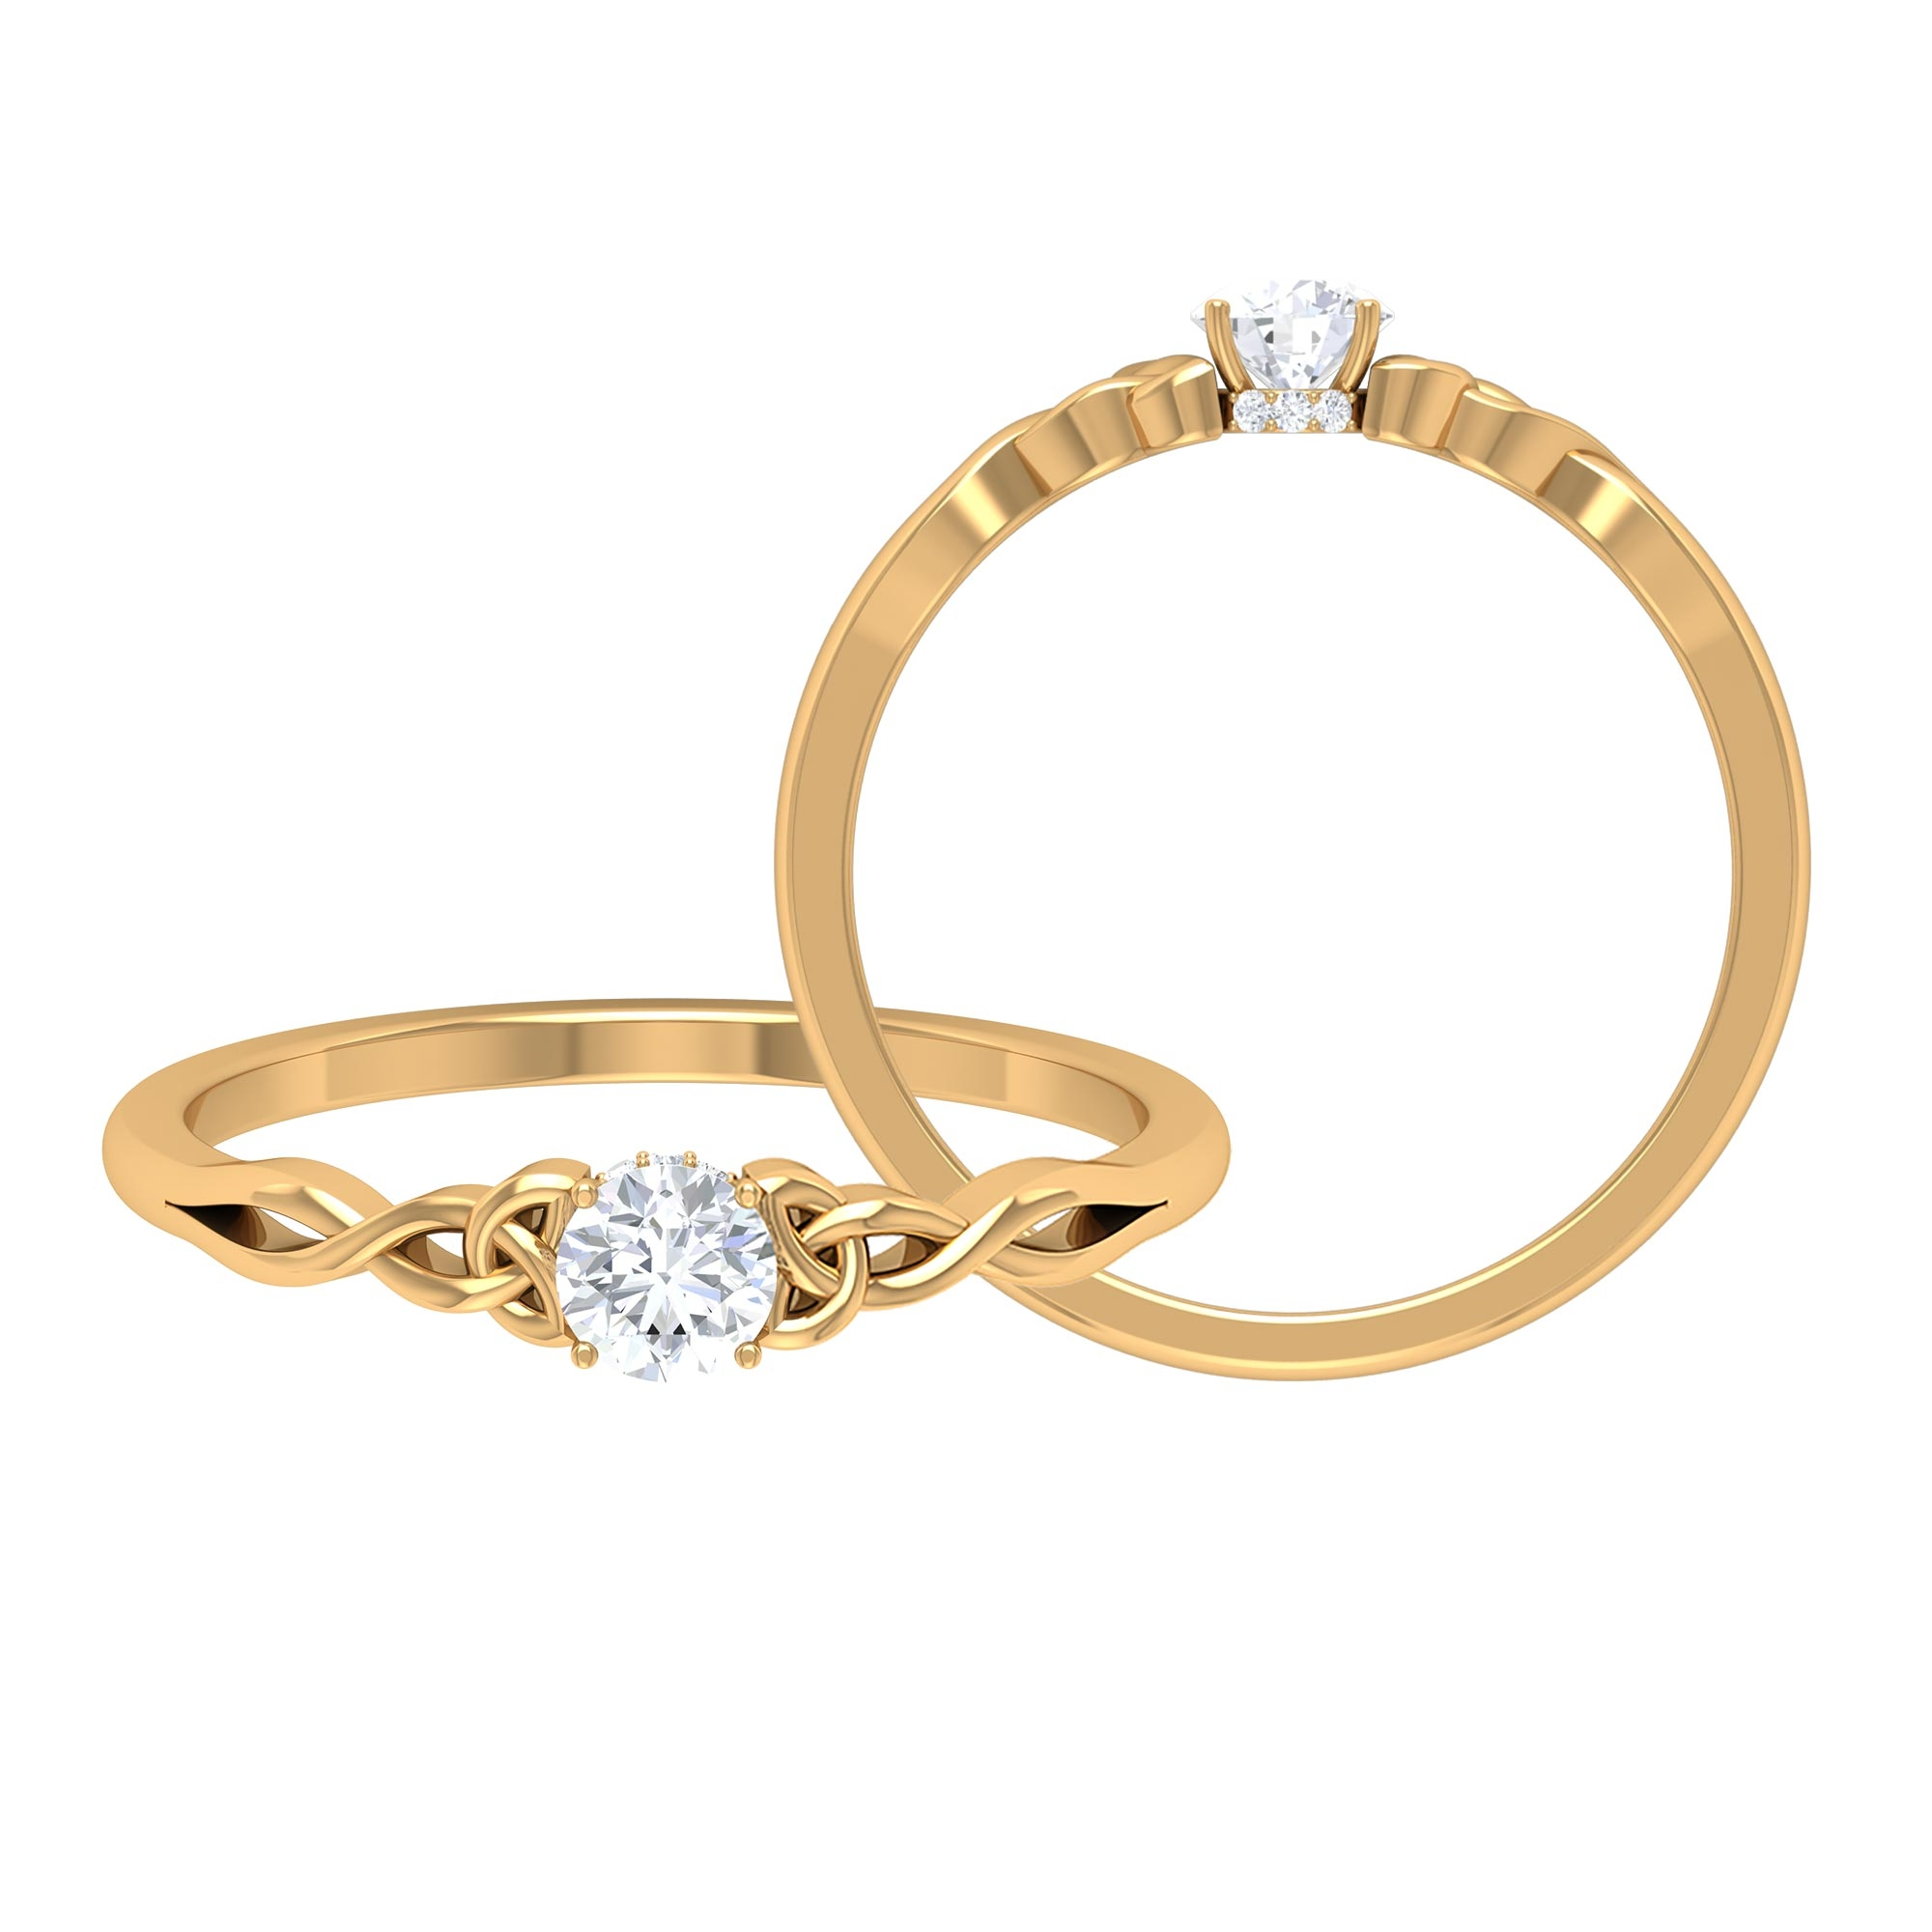 1/4 CT Round Cut Diamond Solitaire Ring in Prong Setting with Hidden Halo and Celtic Details